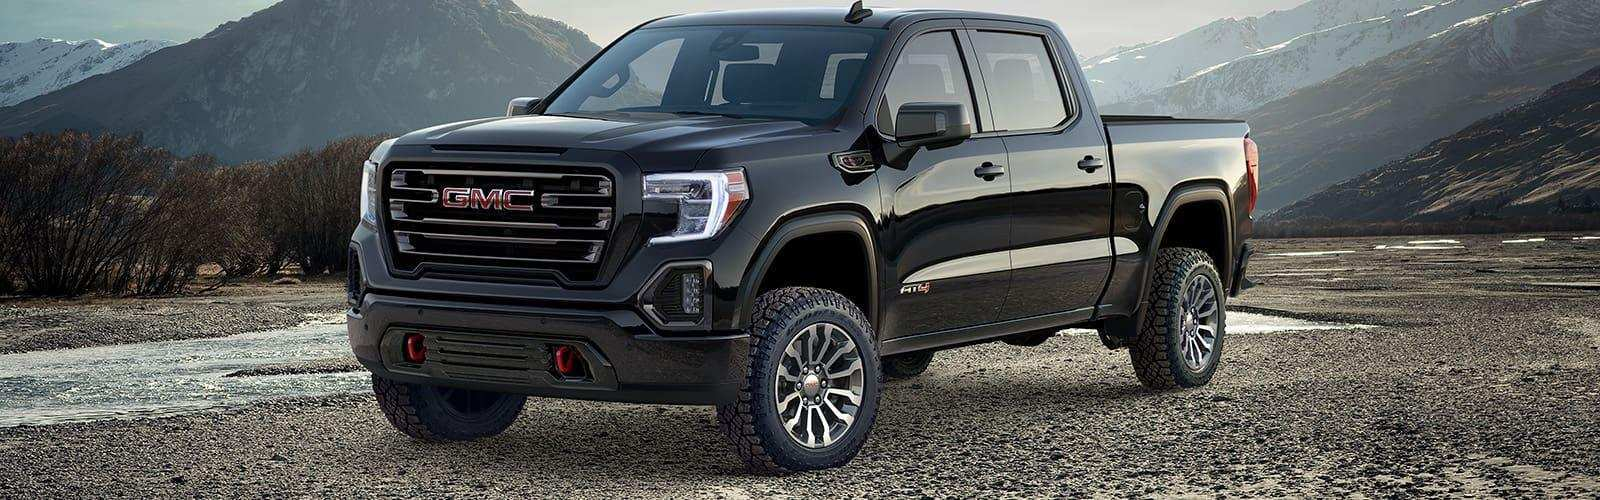 94 Best 2019 GMC Sierra 1500 Price And Release Date